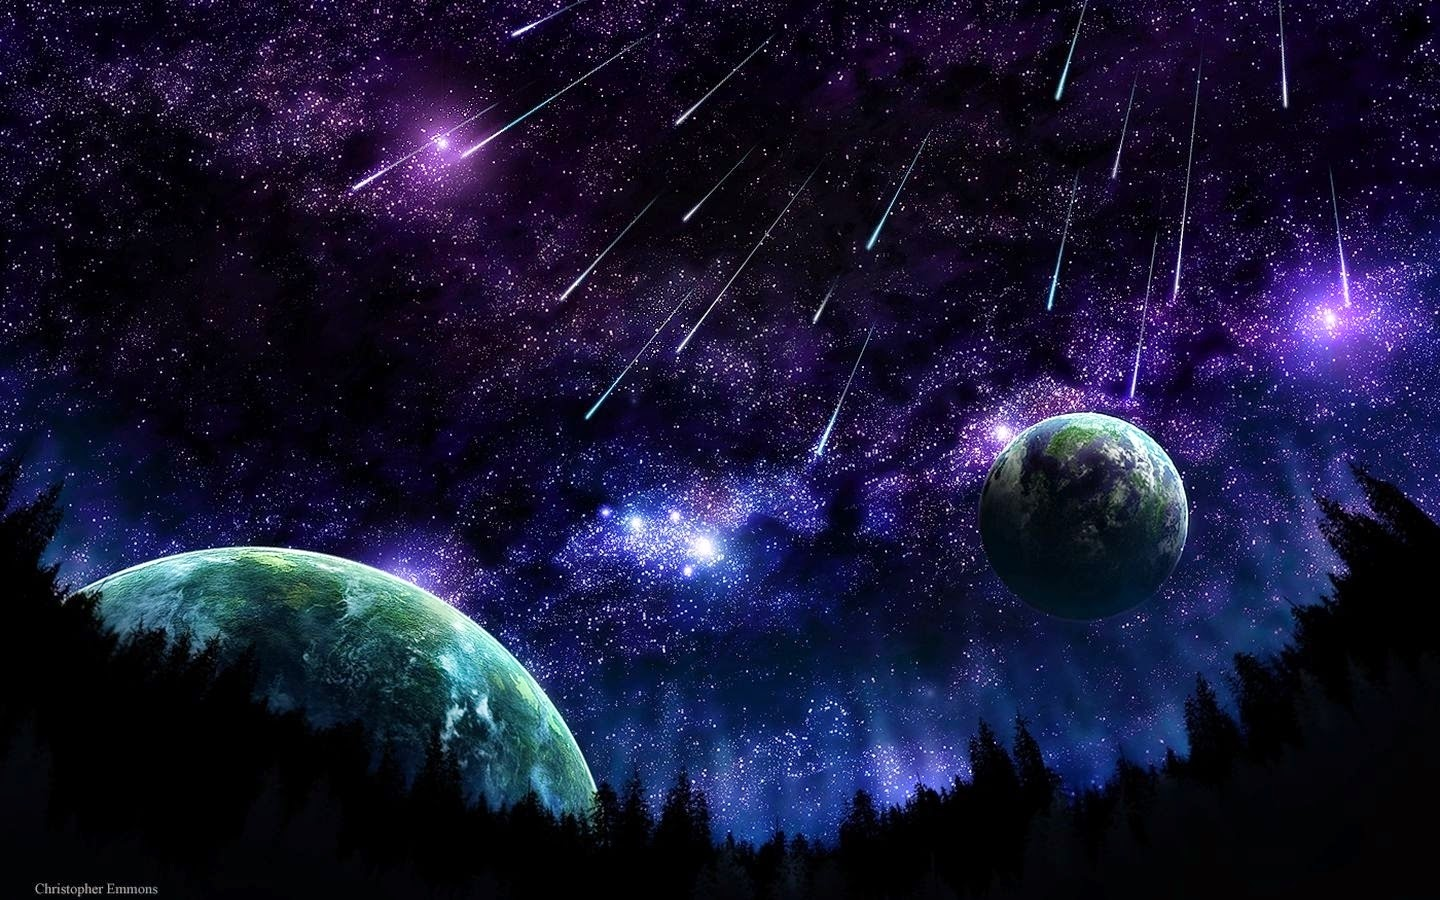 Space images wallpaper space wallpaper - Space wallpaper desktop ...